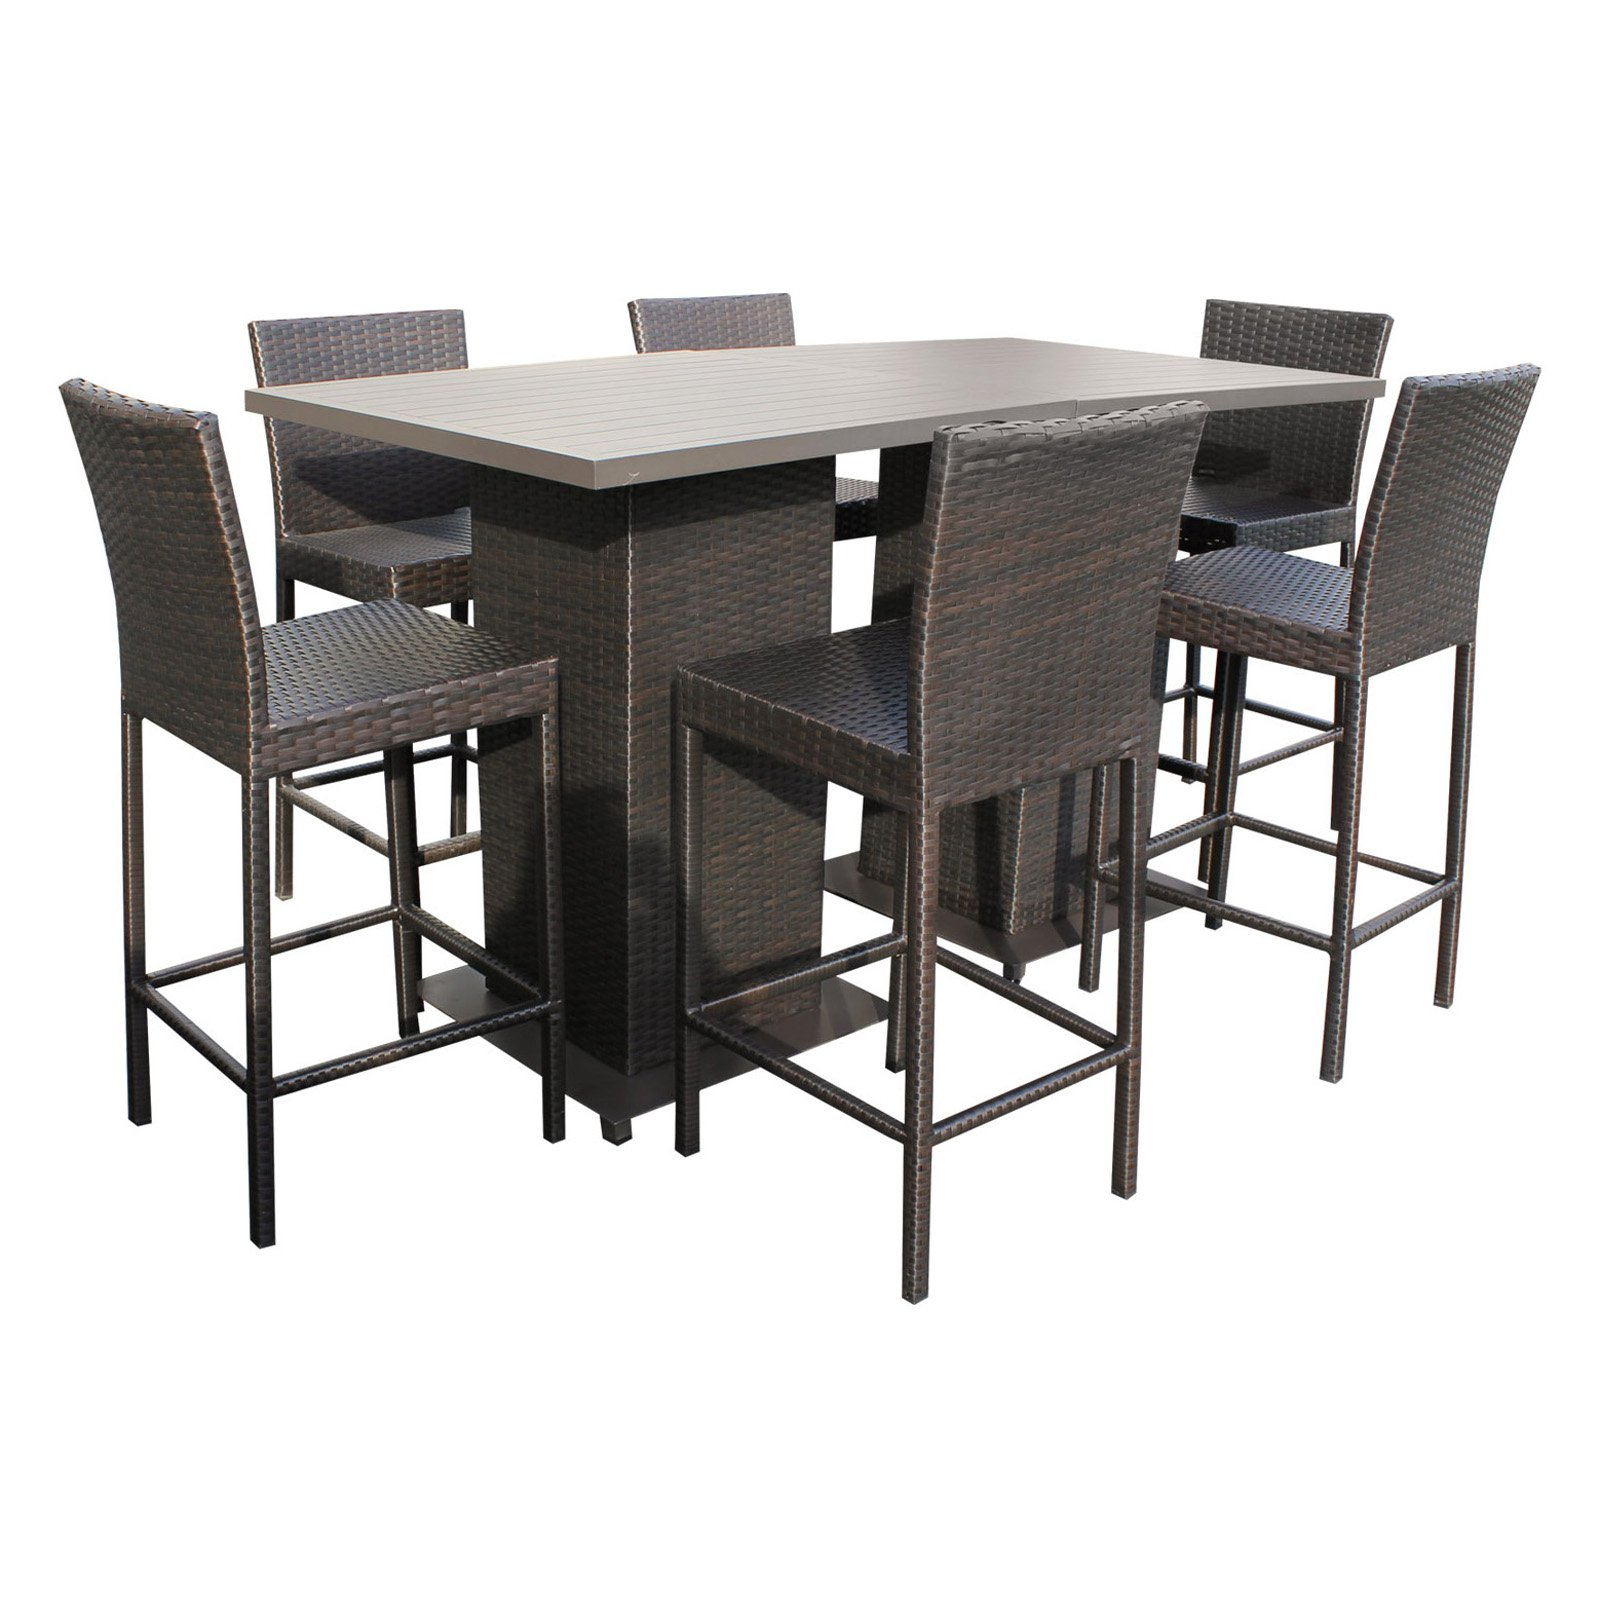 TK Classics Napa Wicker 8 Piece Outdoor Pub Table Set